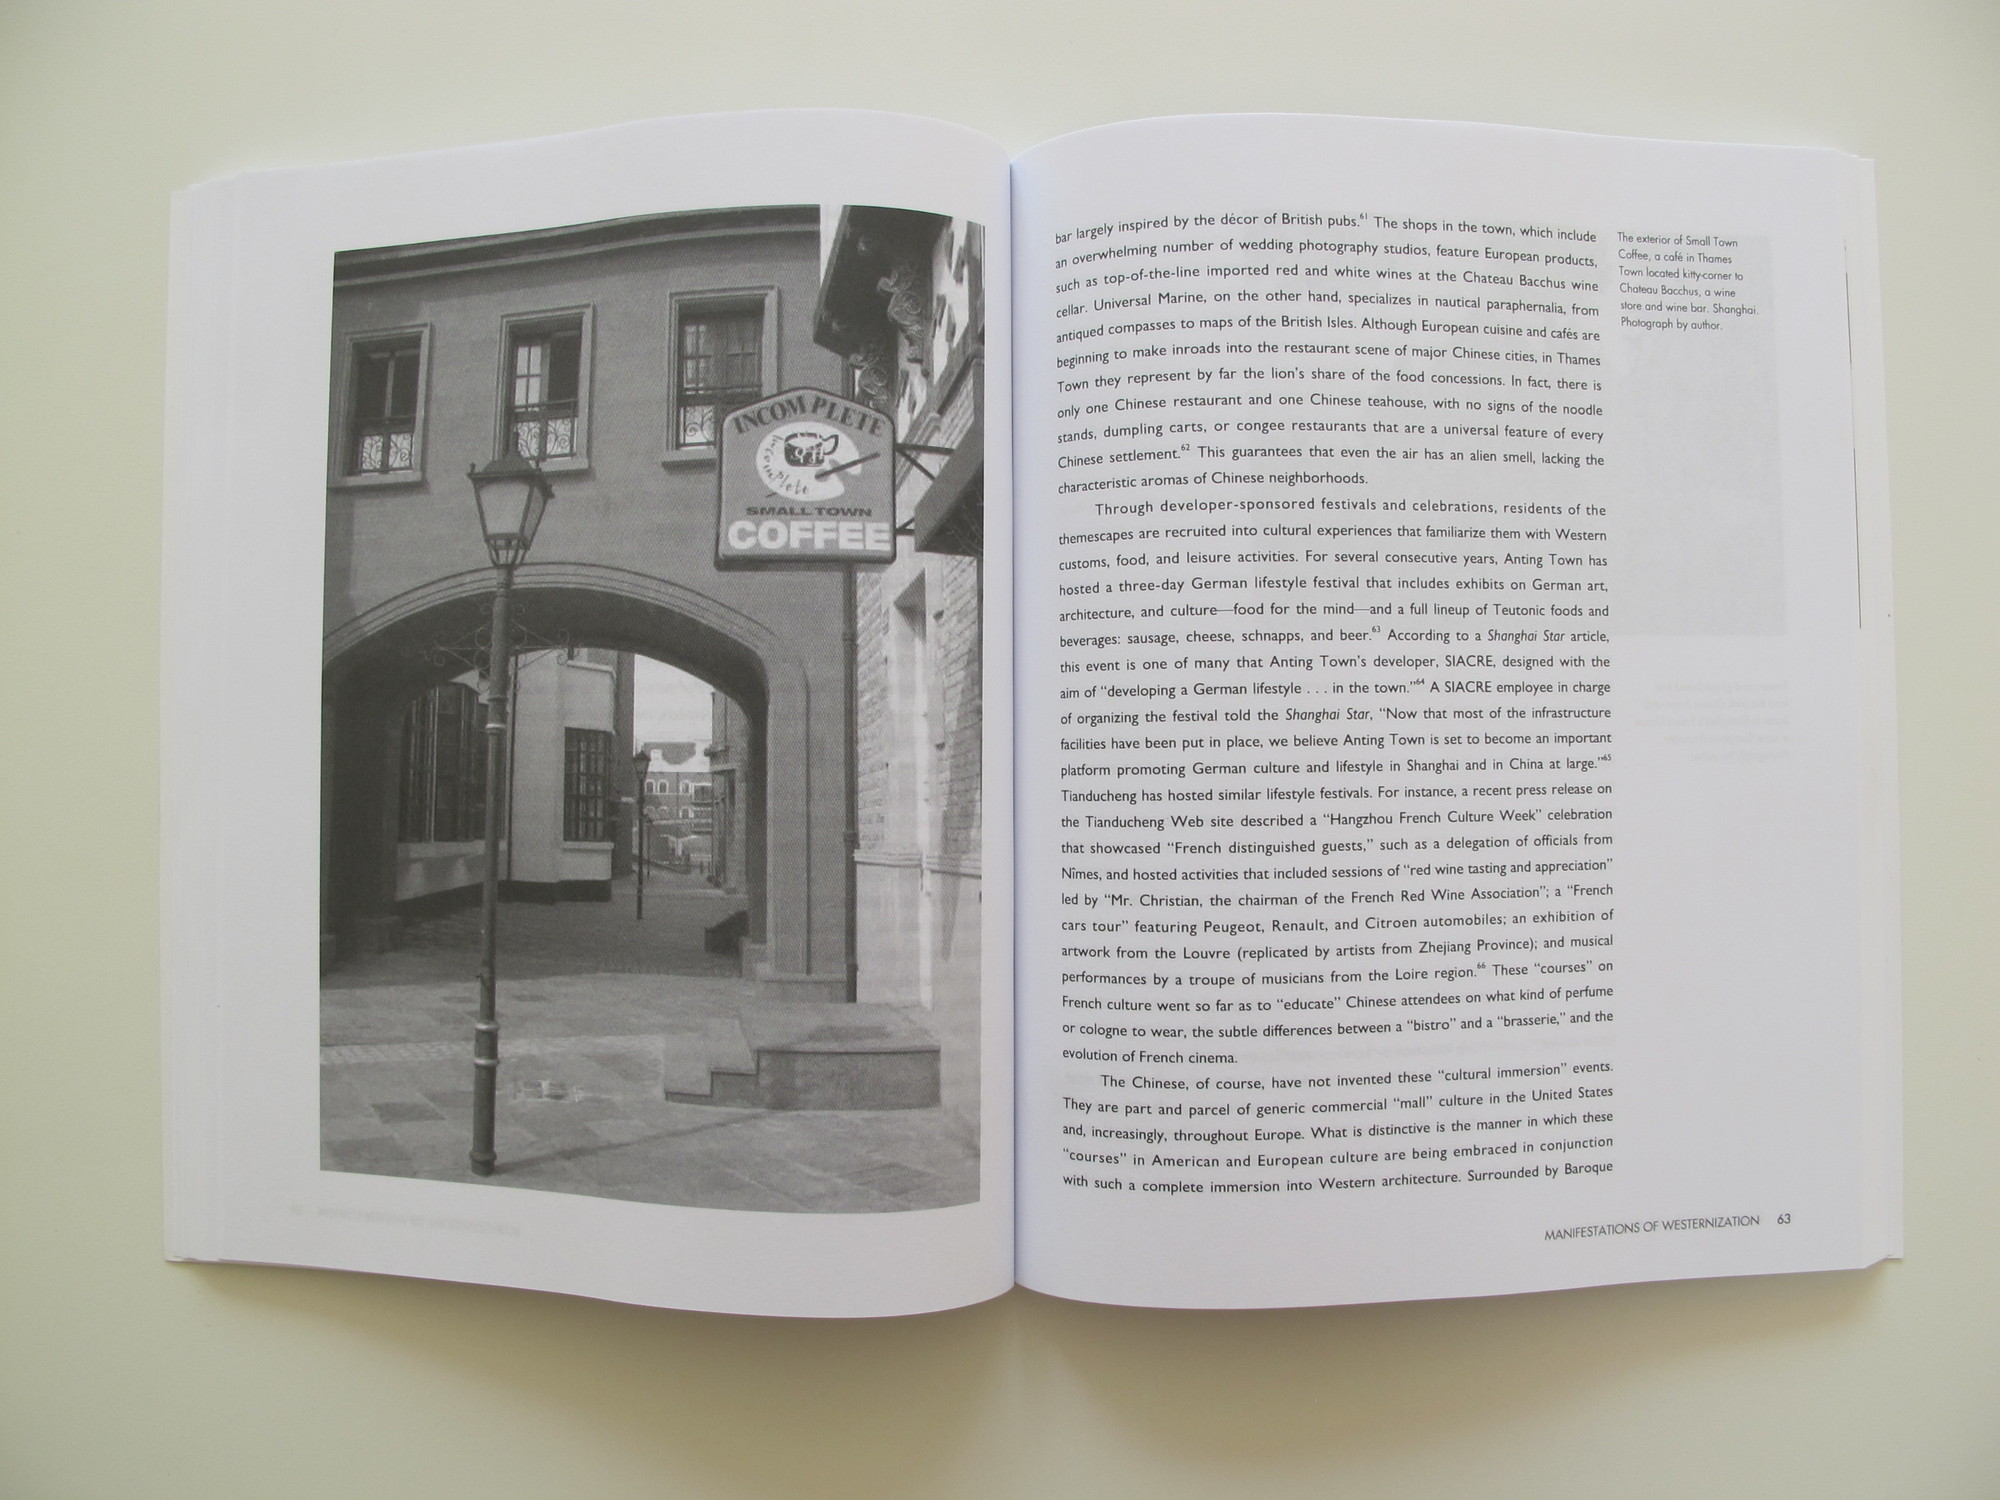 Original Copies: Architectural Mimicry in Contemporary China / Bianca Bosker